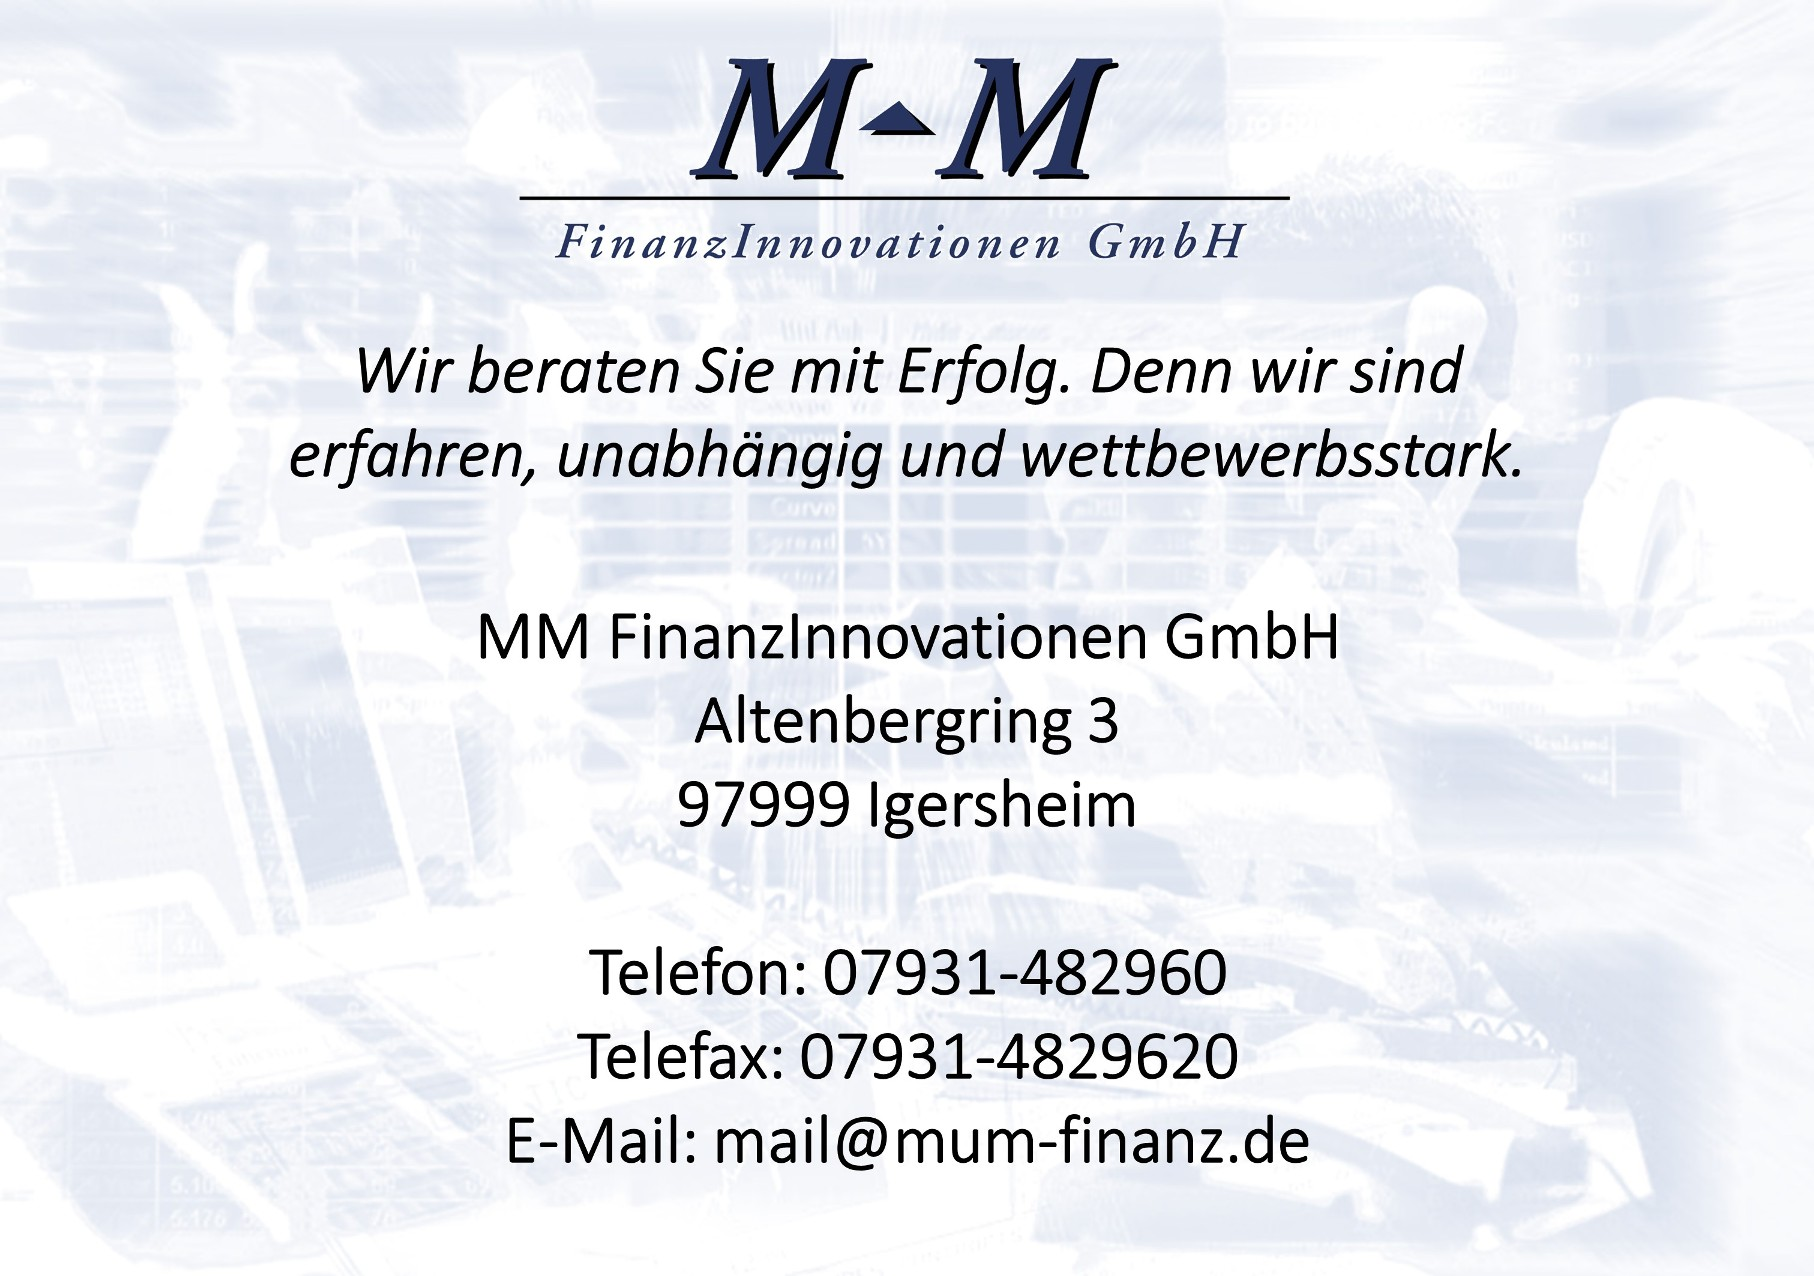 MM FinanzInnovationen GmbH